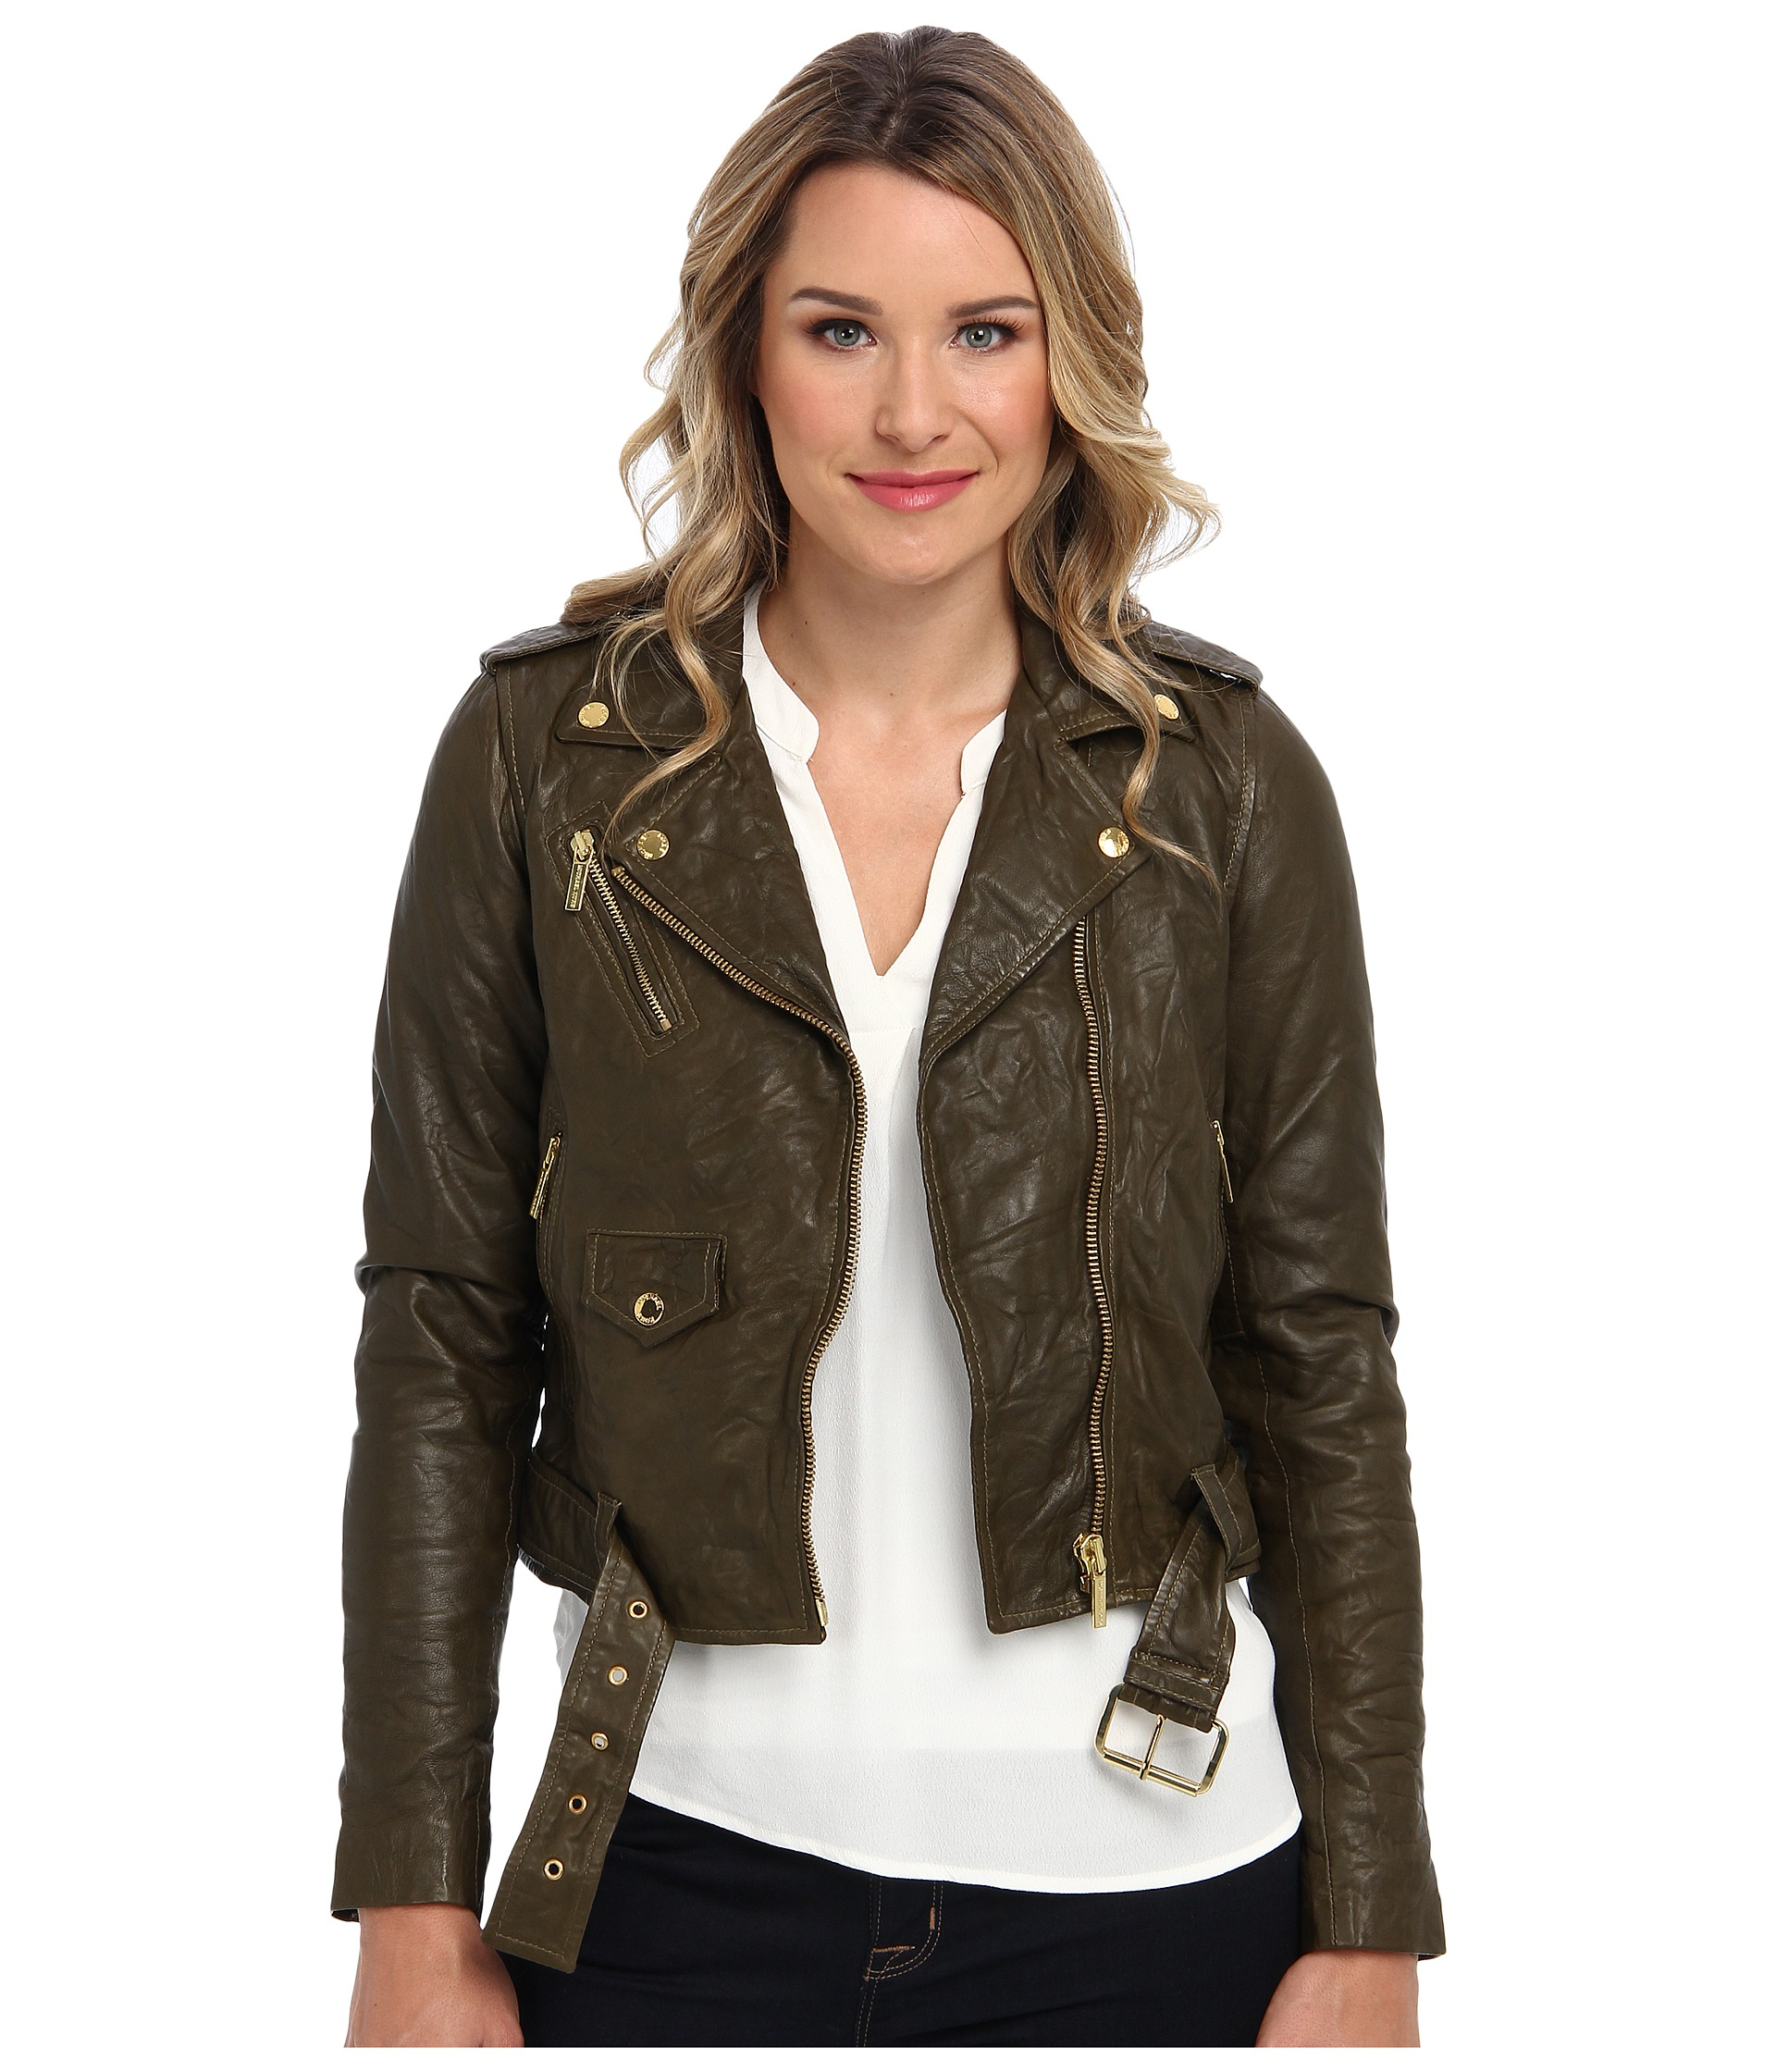 Michael Kors Cropped Leather Moto Jacket · Michael Kors Cropped Leather Moto Jacket